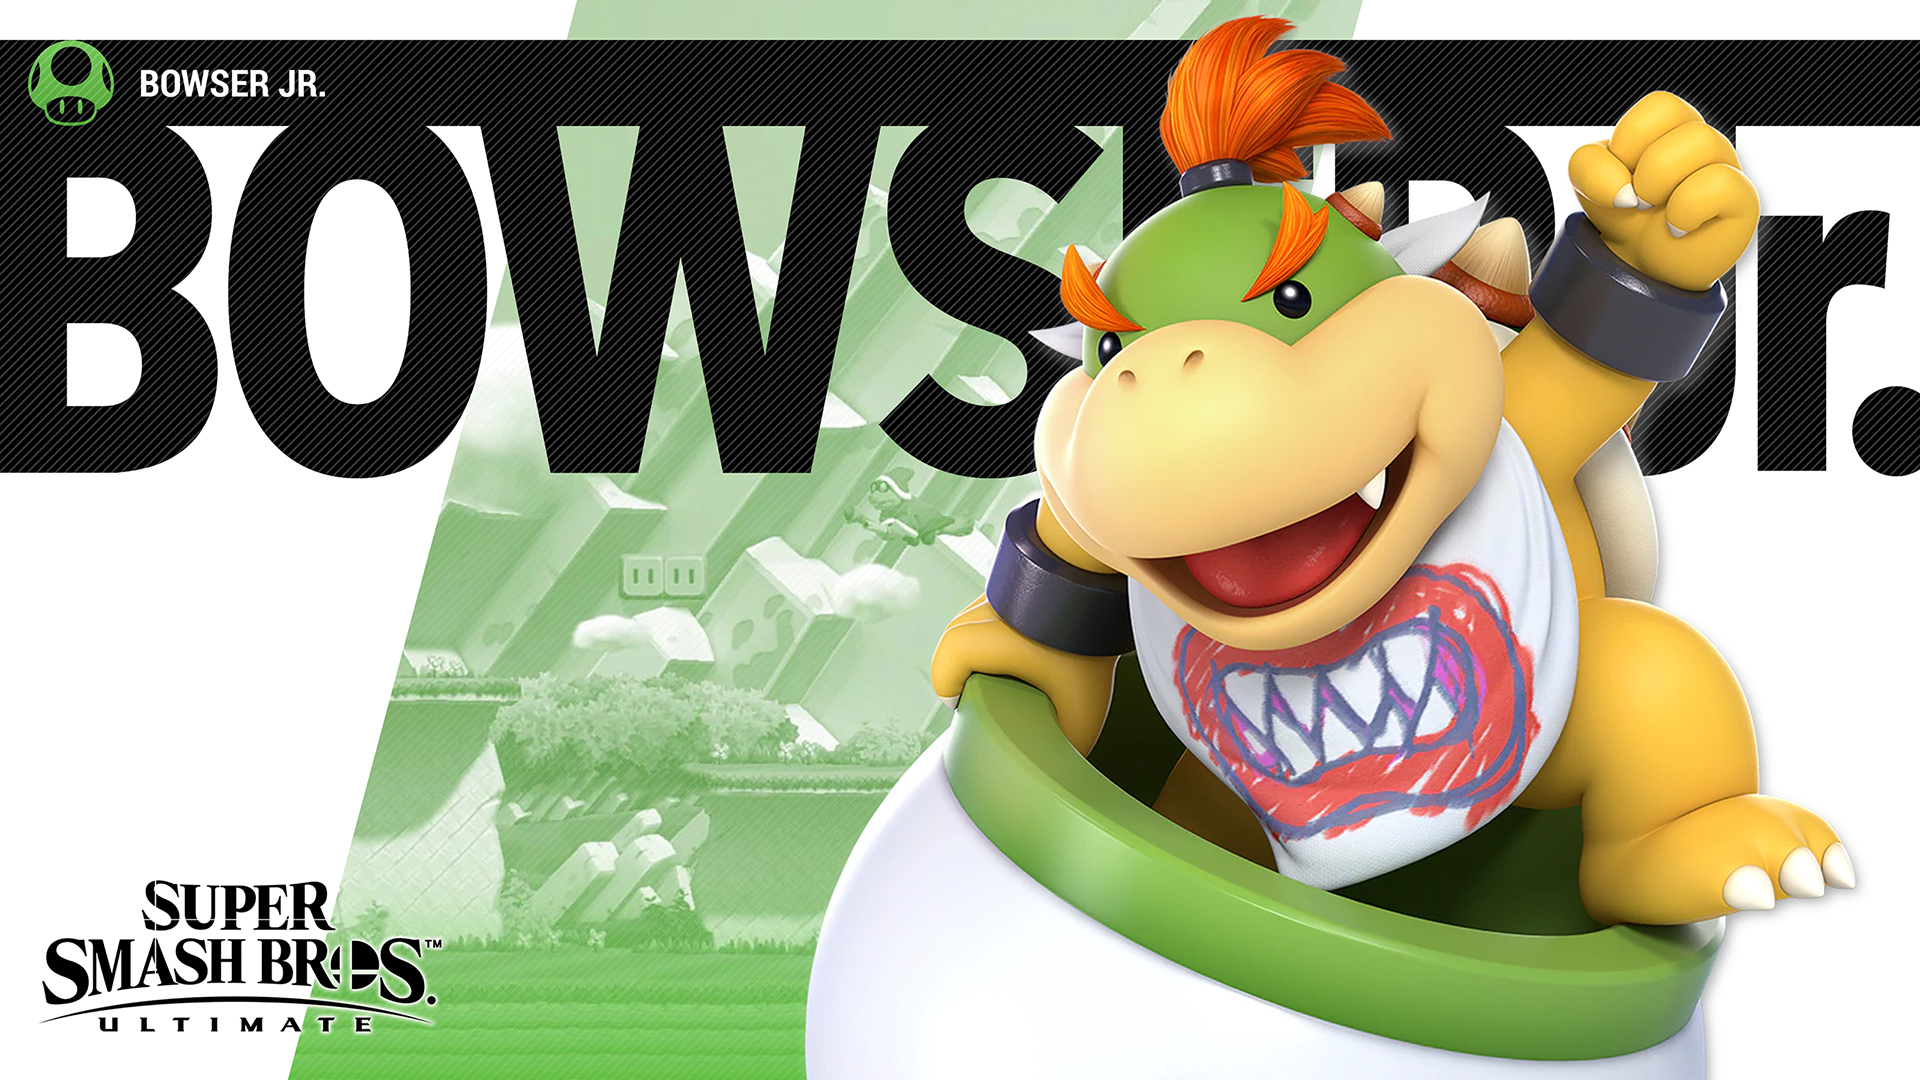 Iphone Se Wallpaper Size Super Smash Bros Ultimate Bowser Jr Wallpapers Cat With